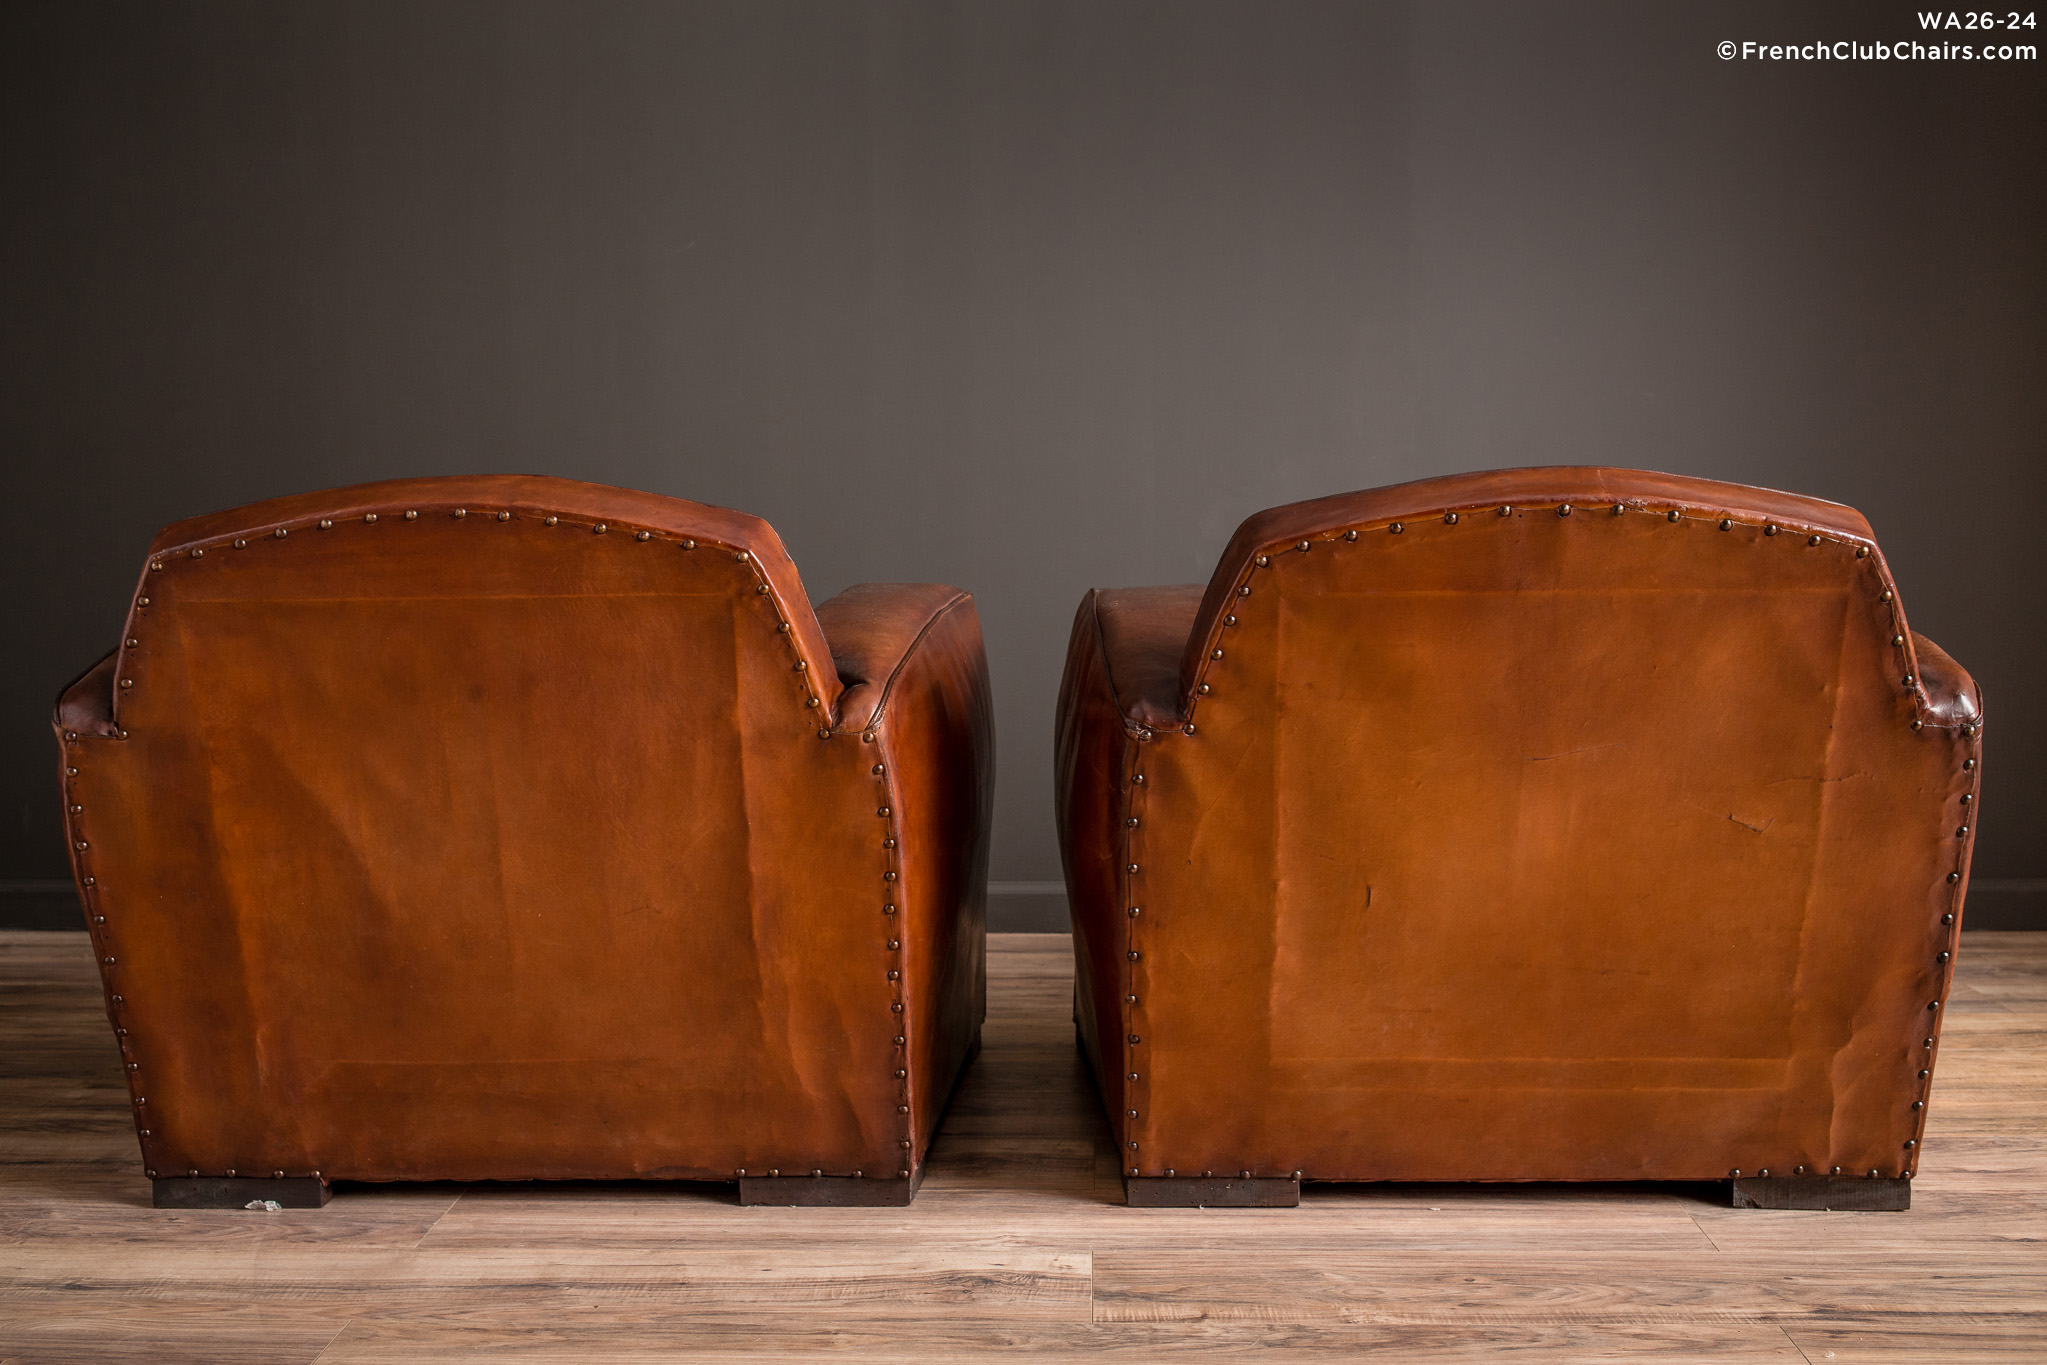 WA_26-24_Jean_Moulin_1920s_Lounge_Pair_R_2BK-v01-williams-antiks-leather-french-club-chair-wa_fcccom